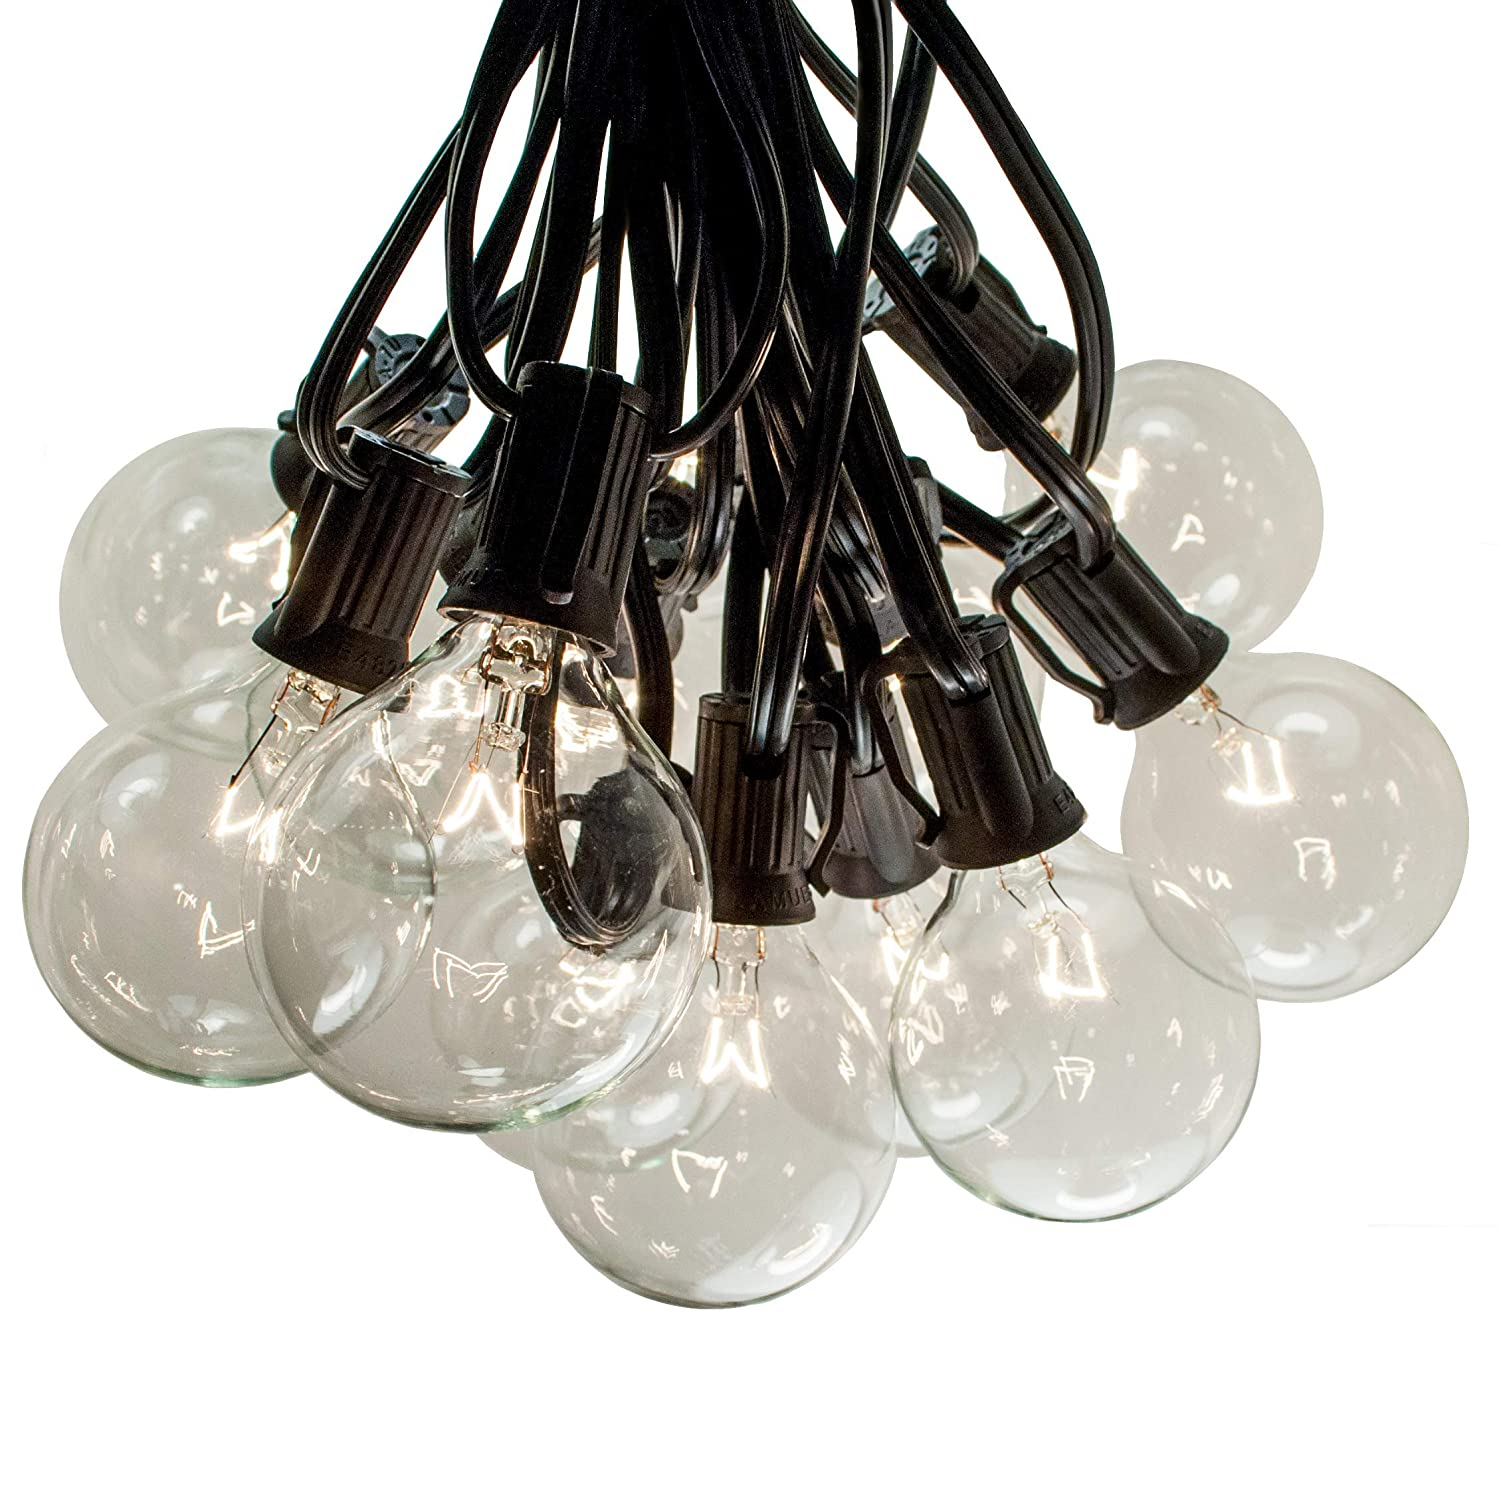 100 Foot G50 Patio Globe String Lights With 2 Inch Clear Bulbs For Wiring A Light Outdoor Lighting Black Wire